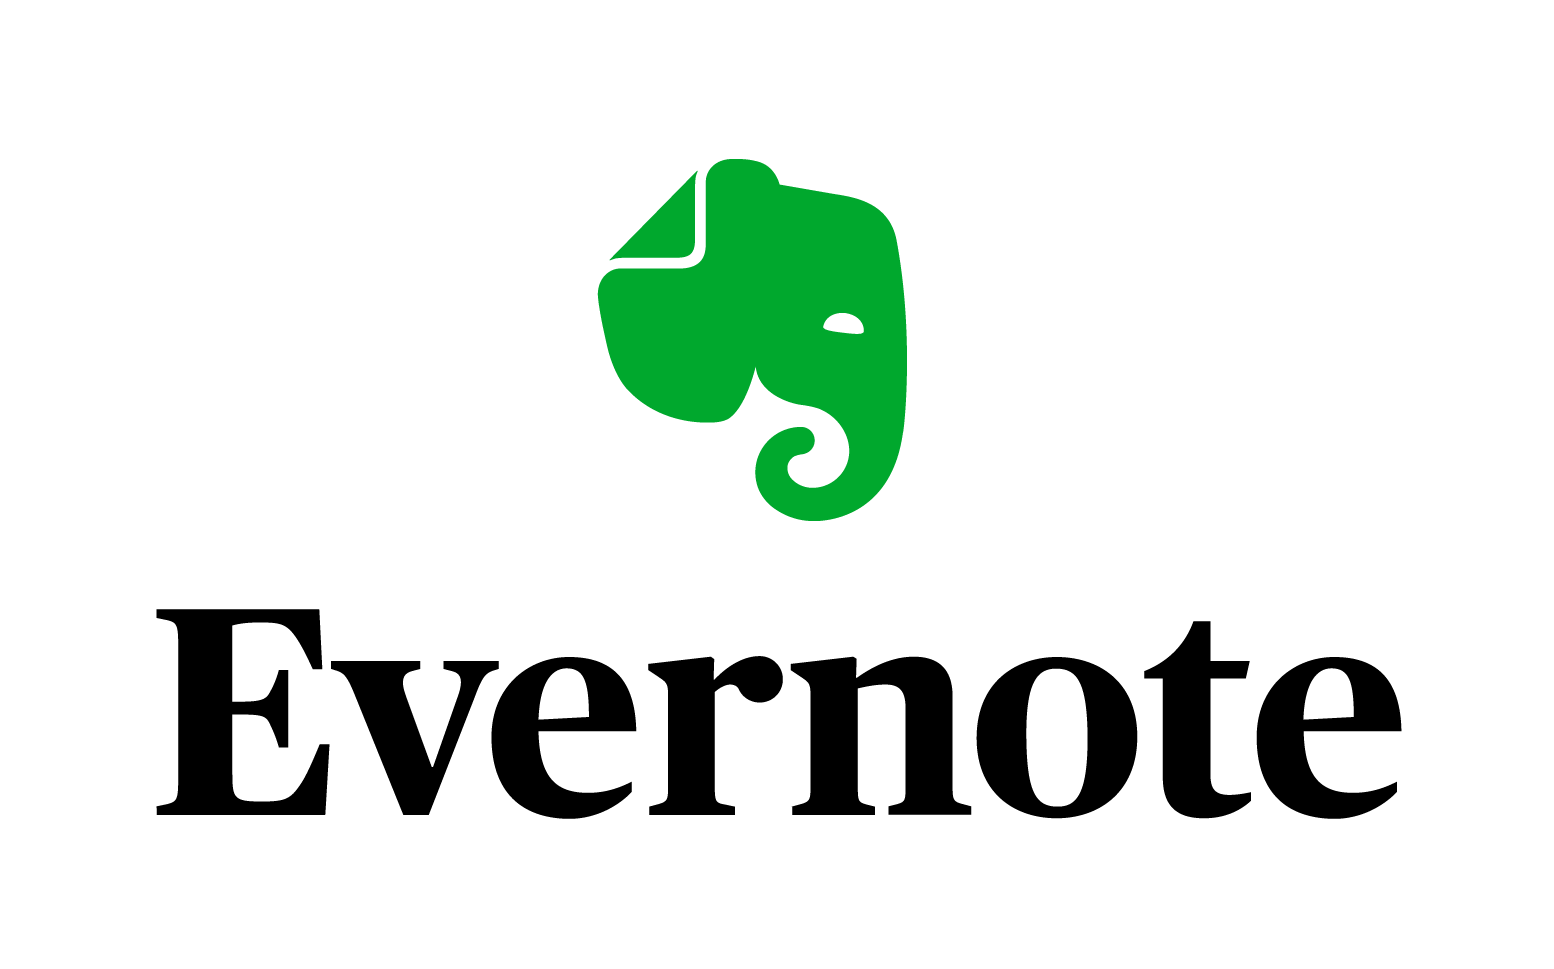 Evernote_Lockup_Secondary_RGB.png